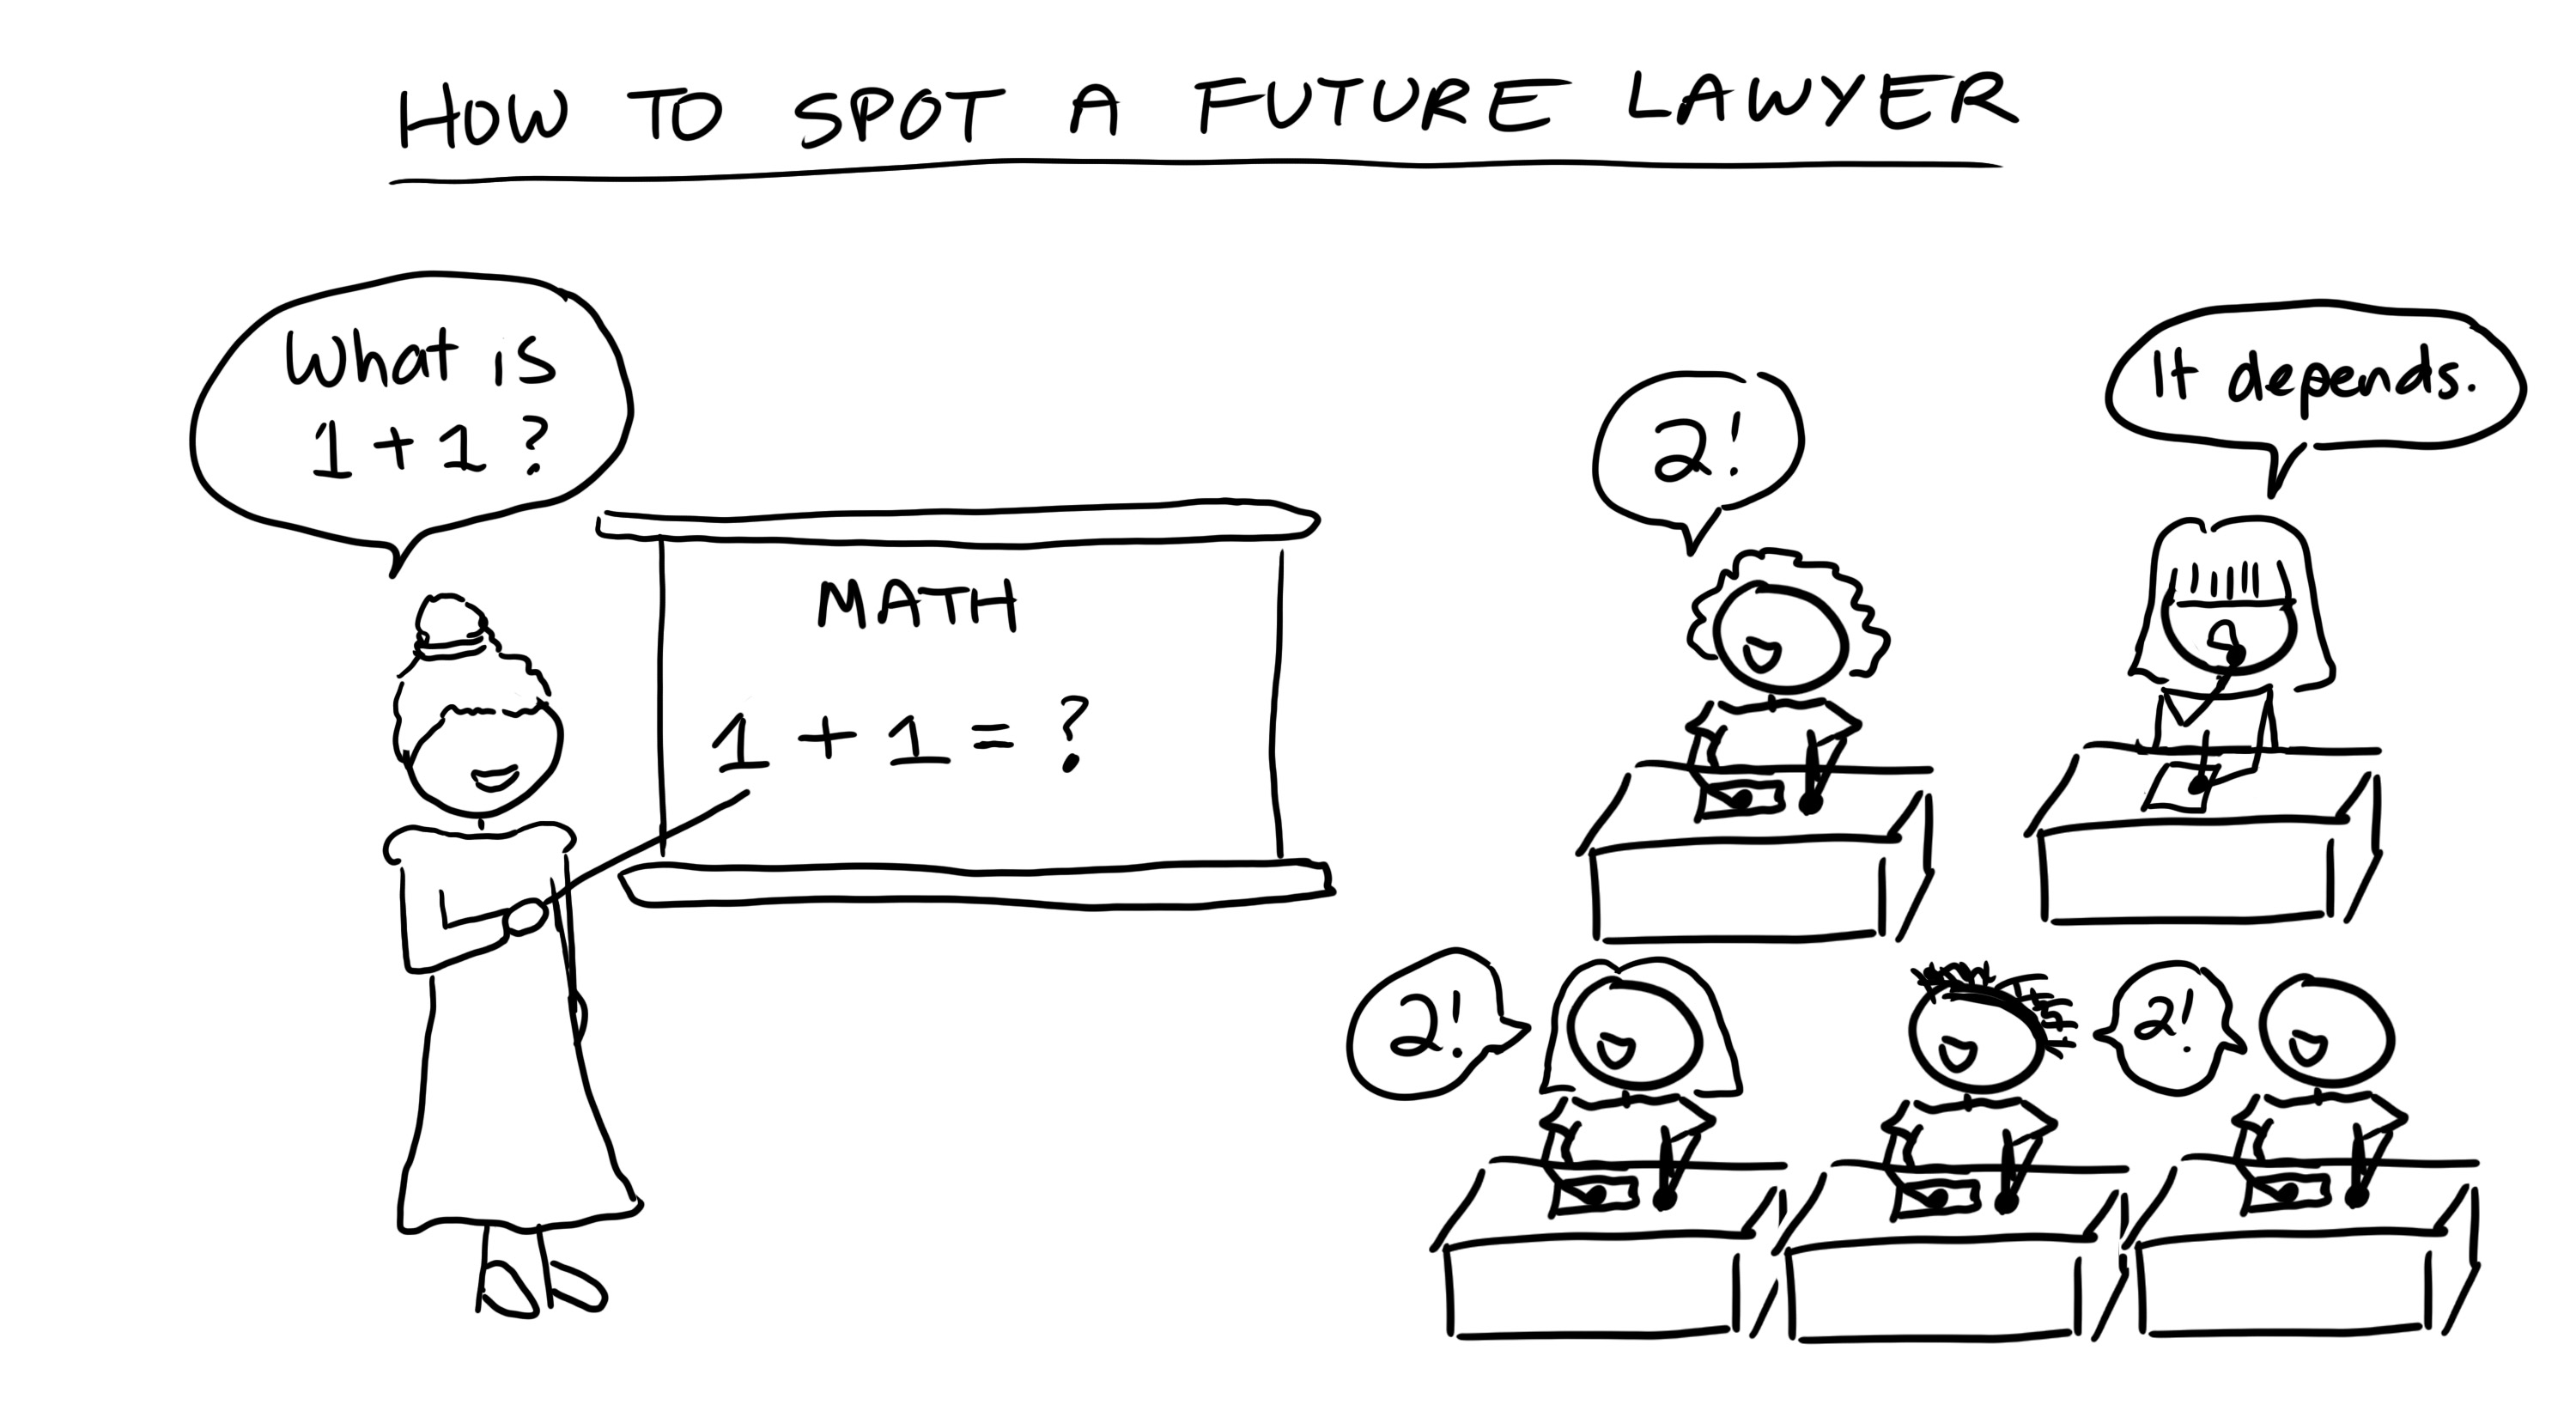 103 - How to spot a future lawyer